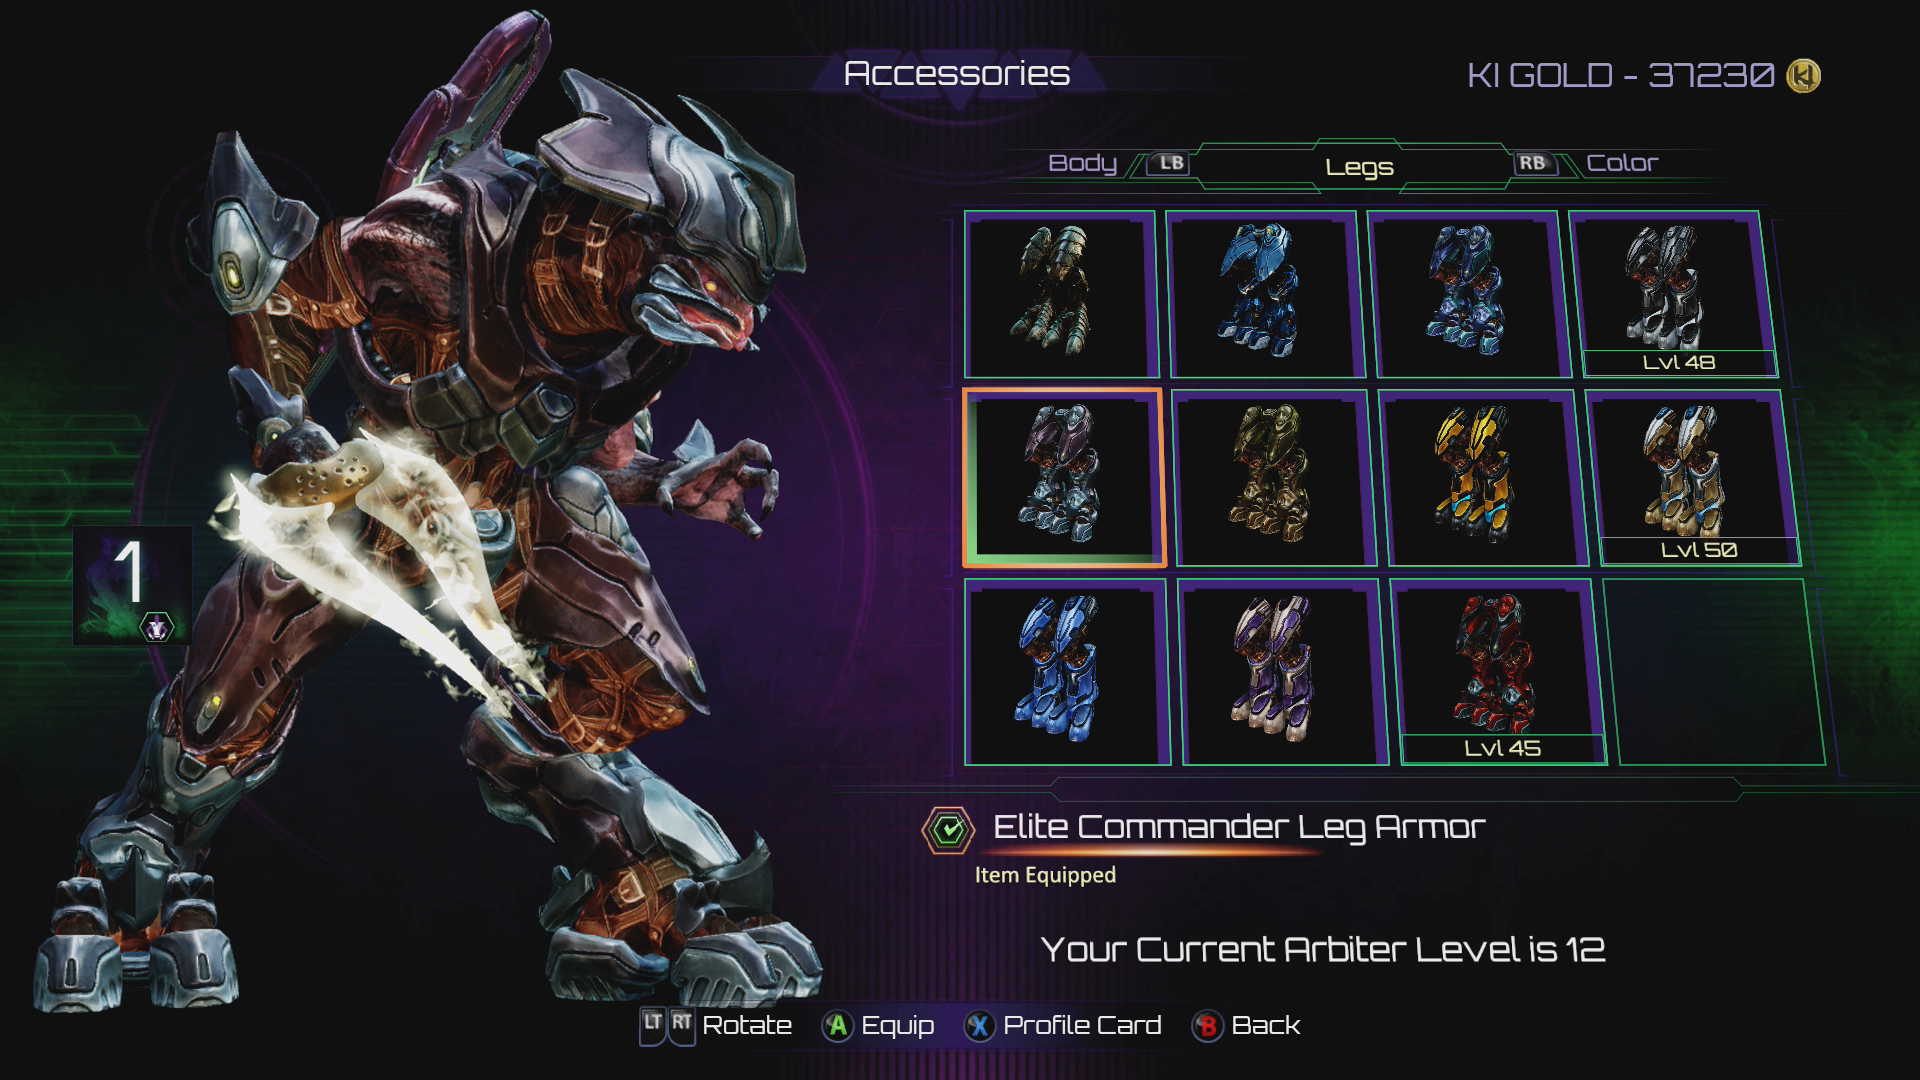 Killer Instinct | Arbiter's Colors & Accessories